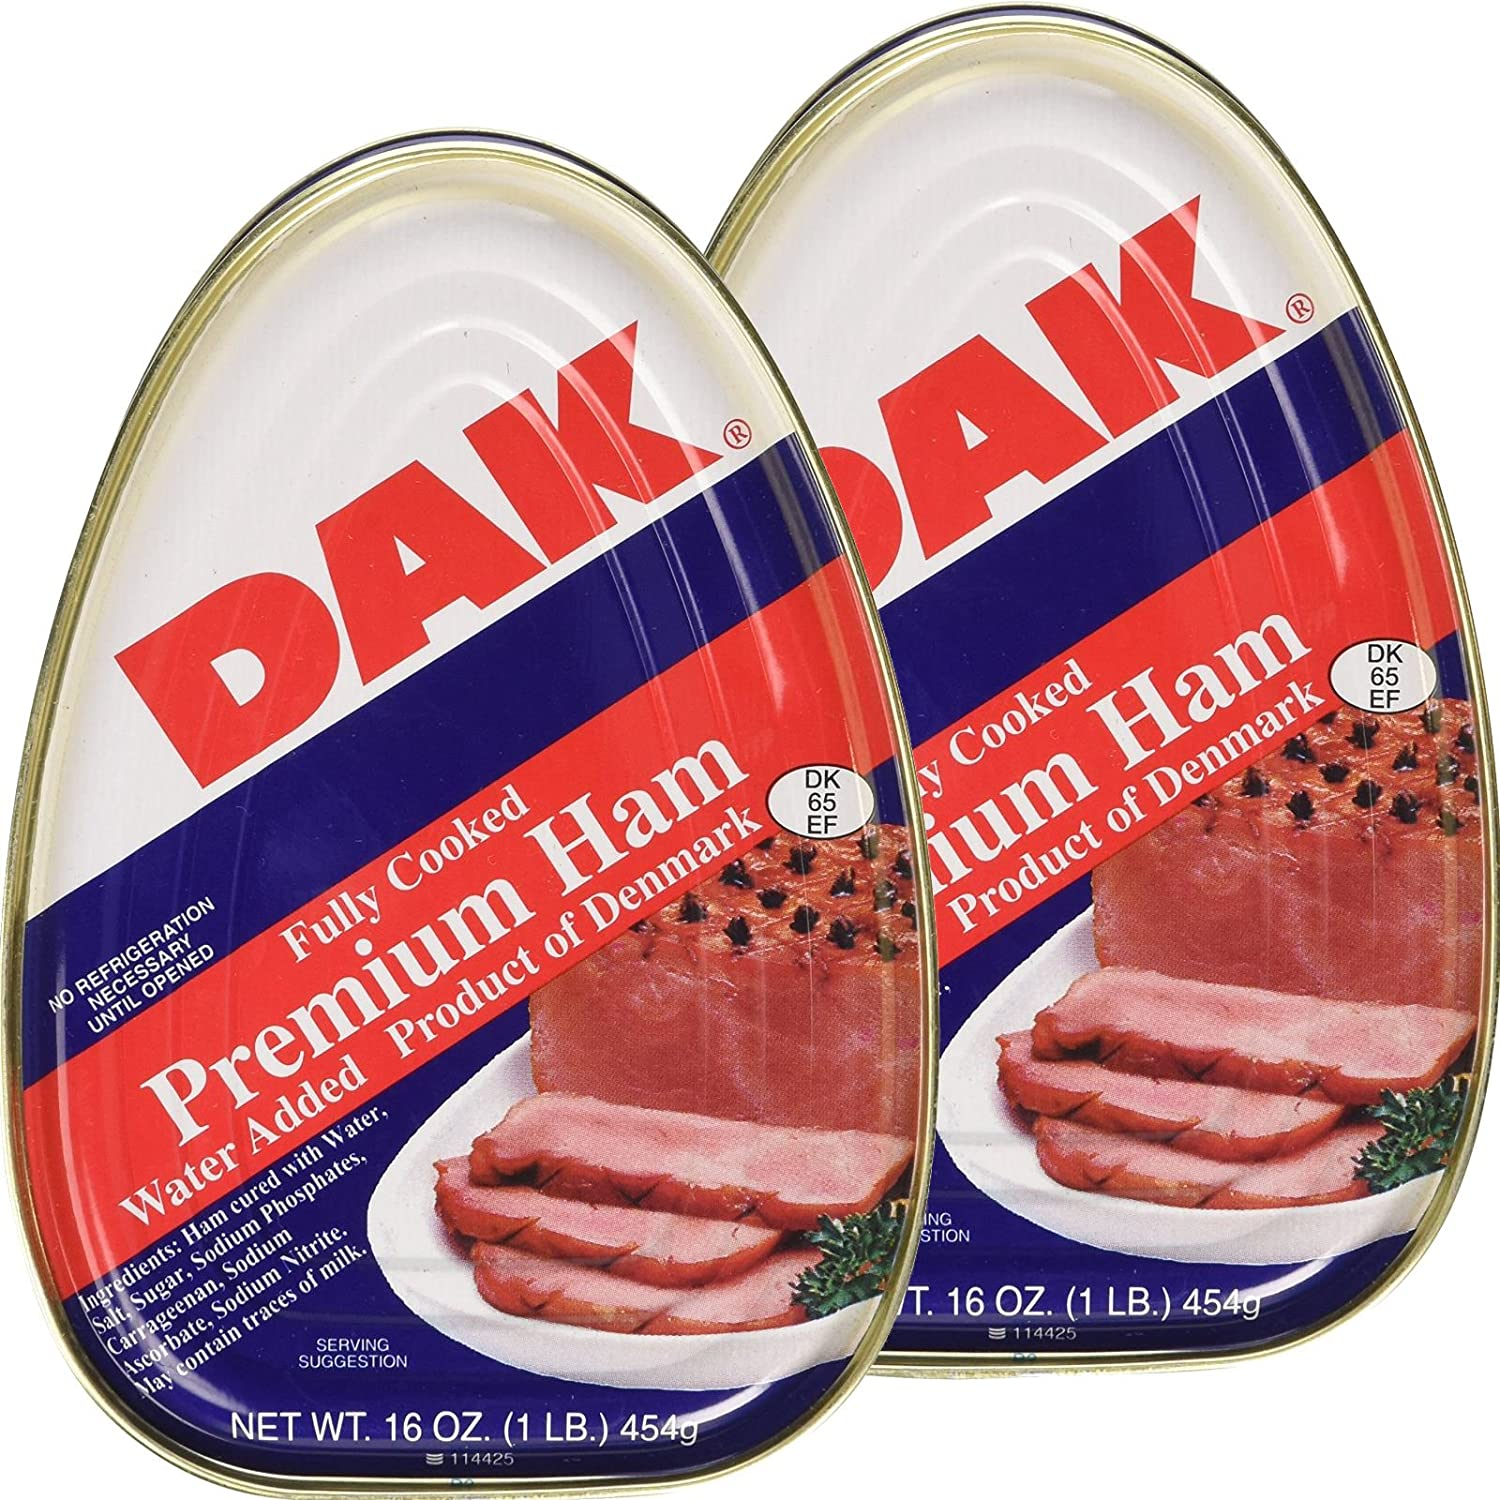 Dak Premium Canned Ham 16oz Fully Cooked, Ready to Eat (2 Pack)